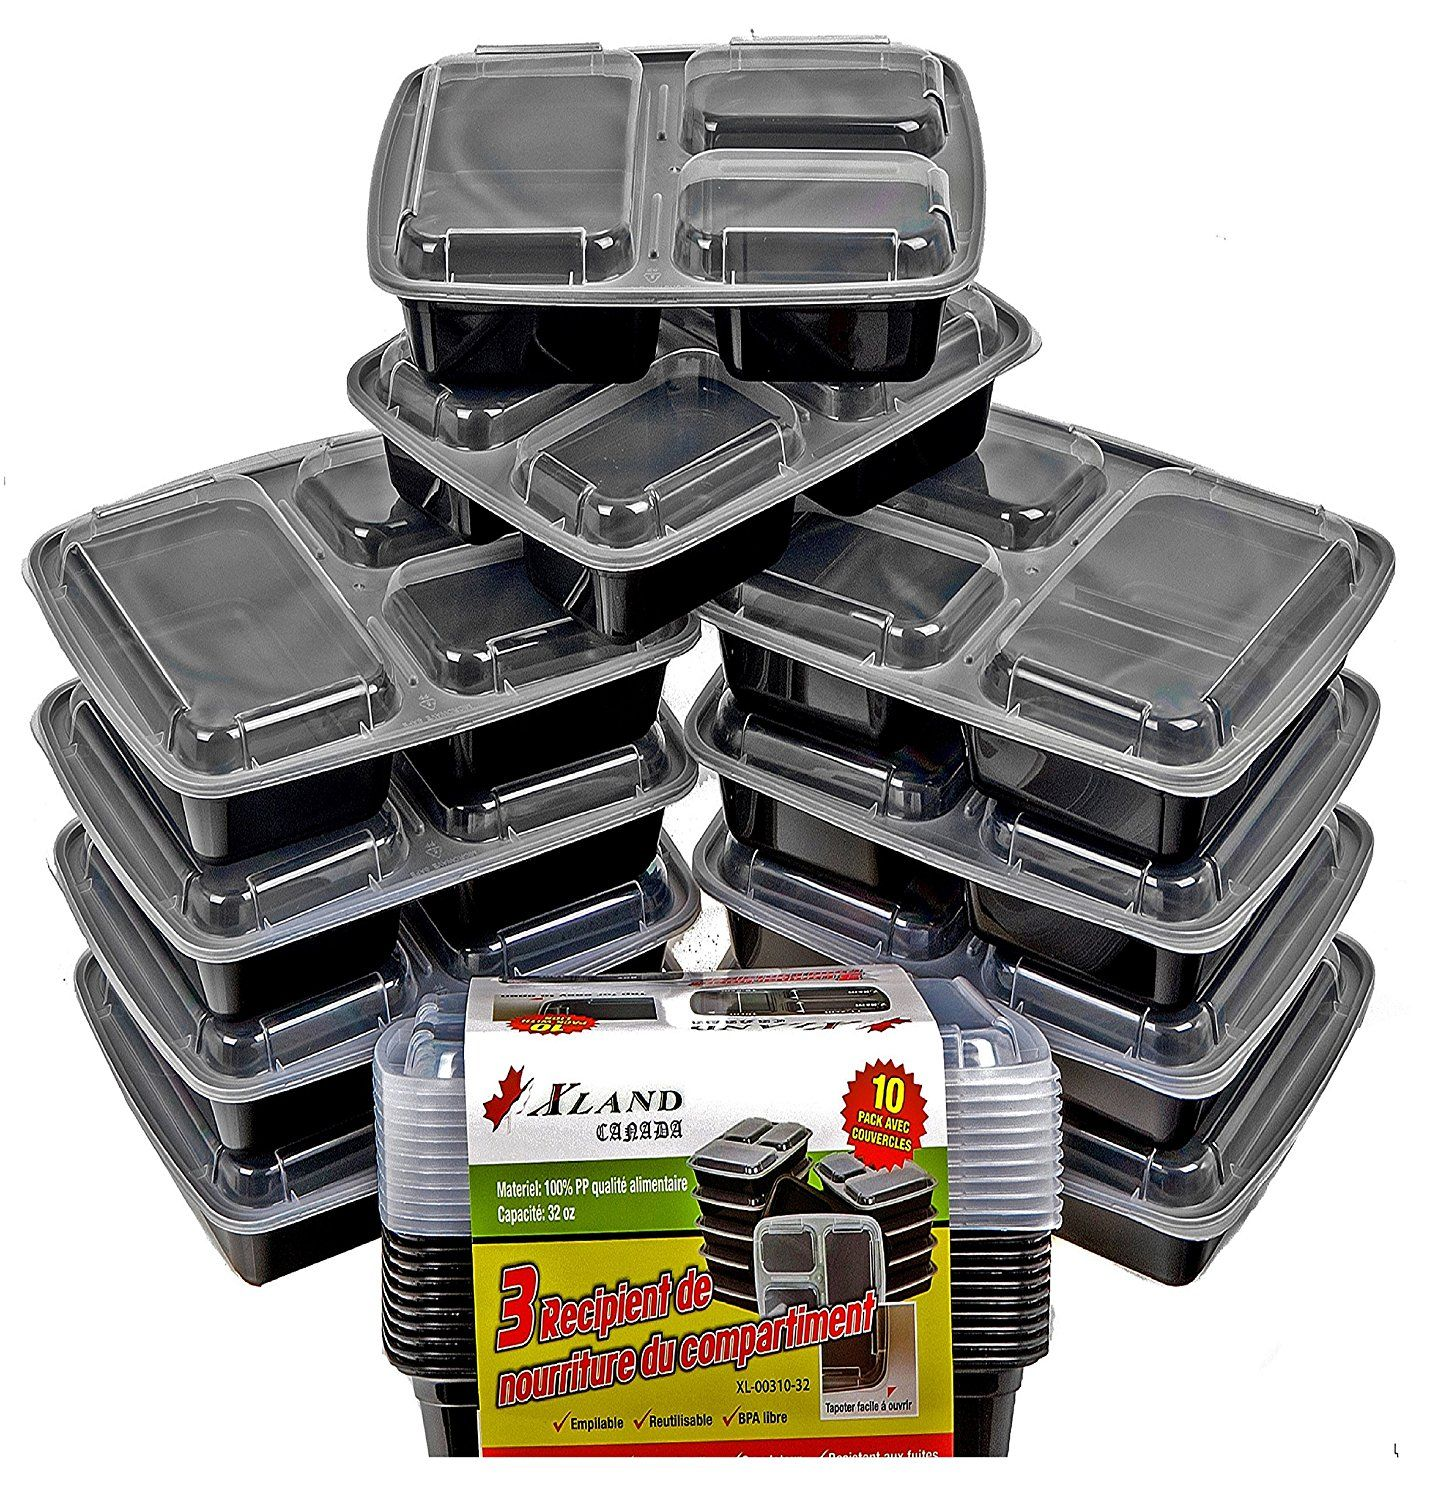 Xland Canada 3 Compartment Food Container 32 oz Plastic Bento Boxes, Black / 100 % Food Grade PP (10): Amazon.ca: Home & Kitchen